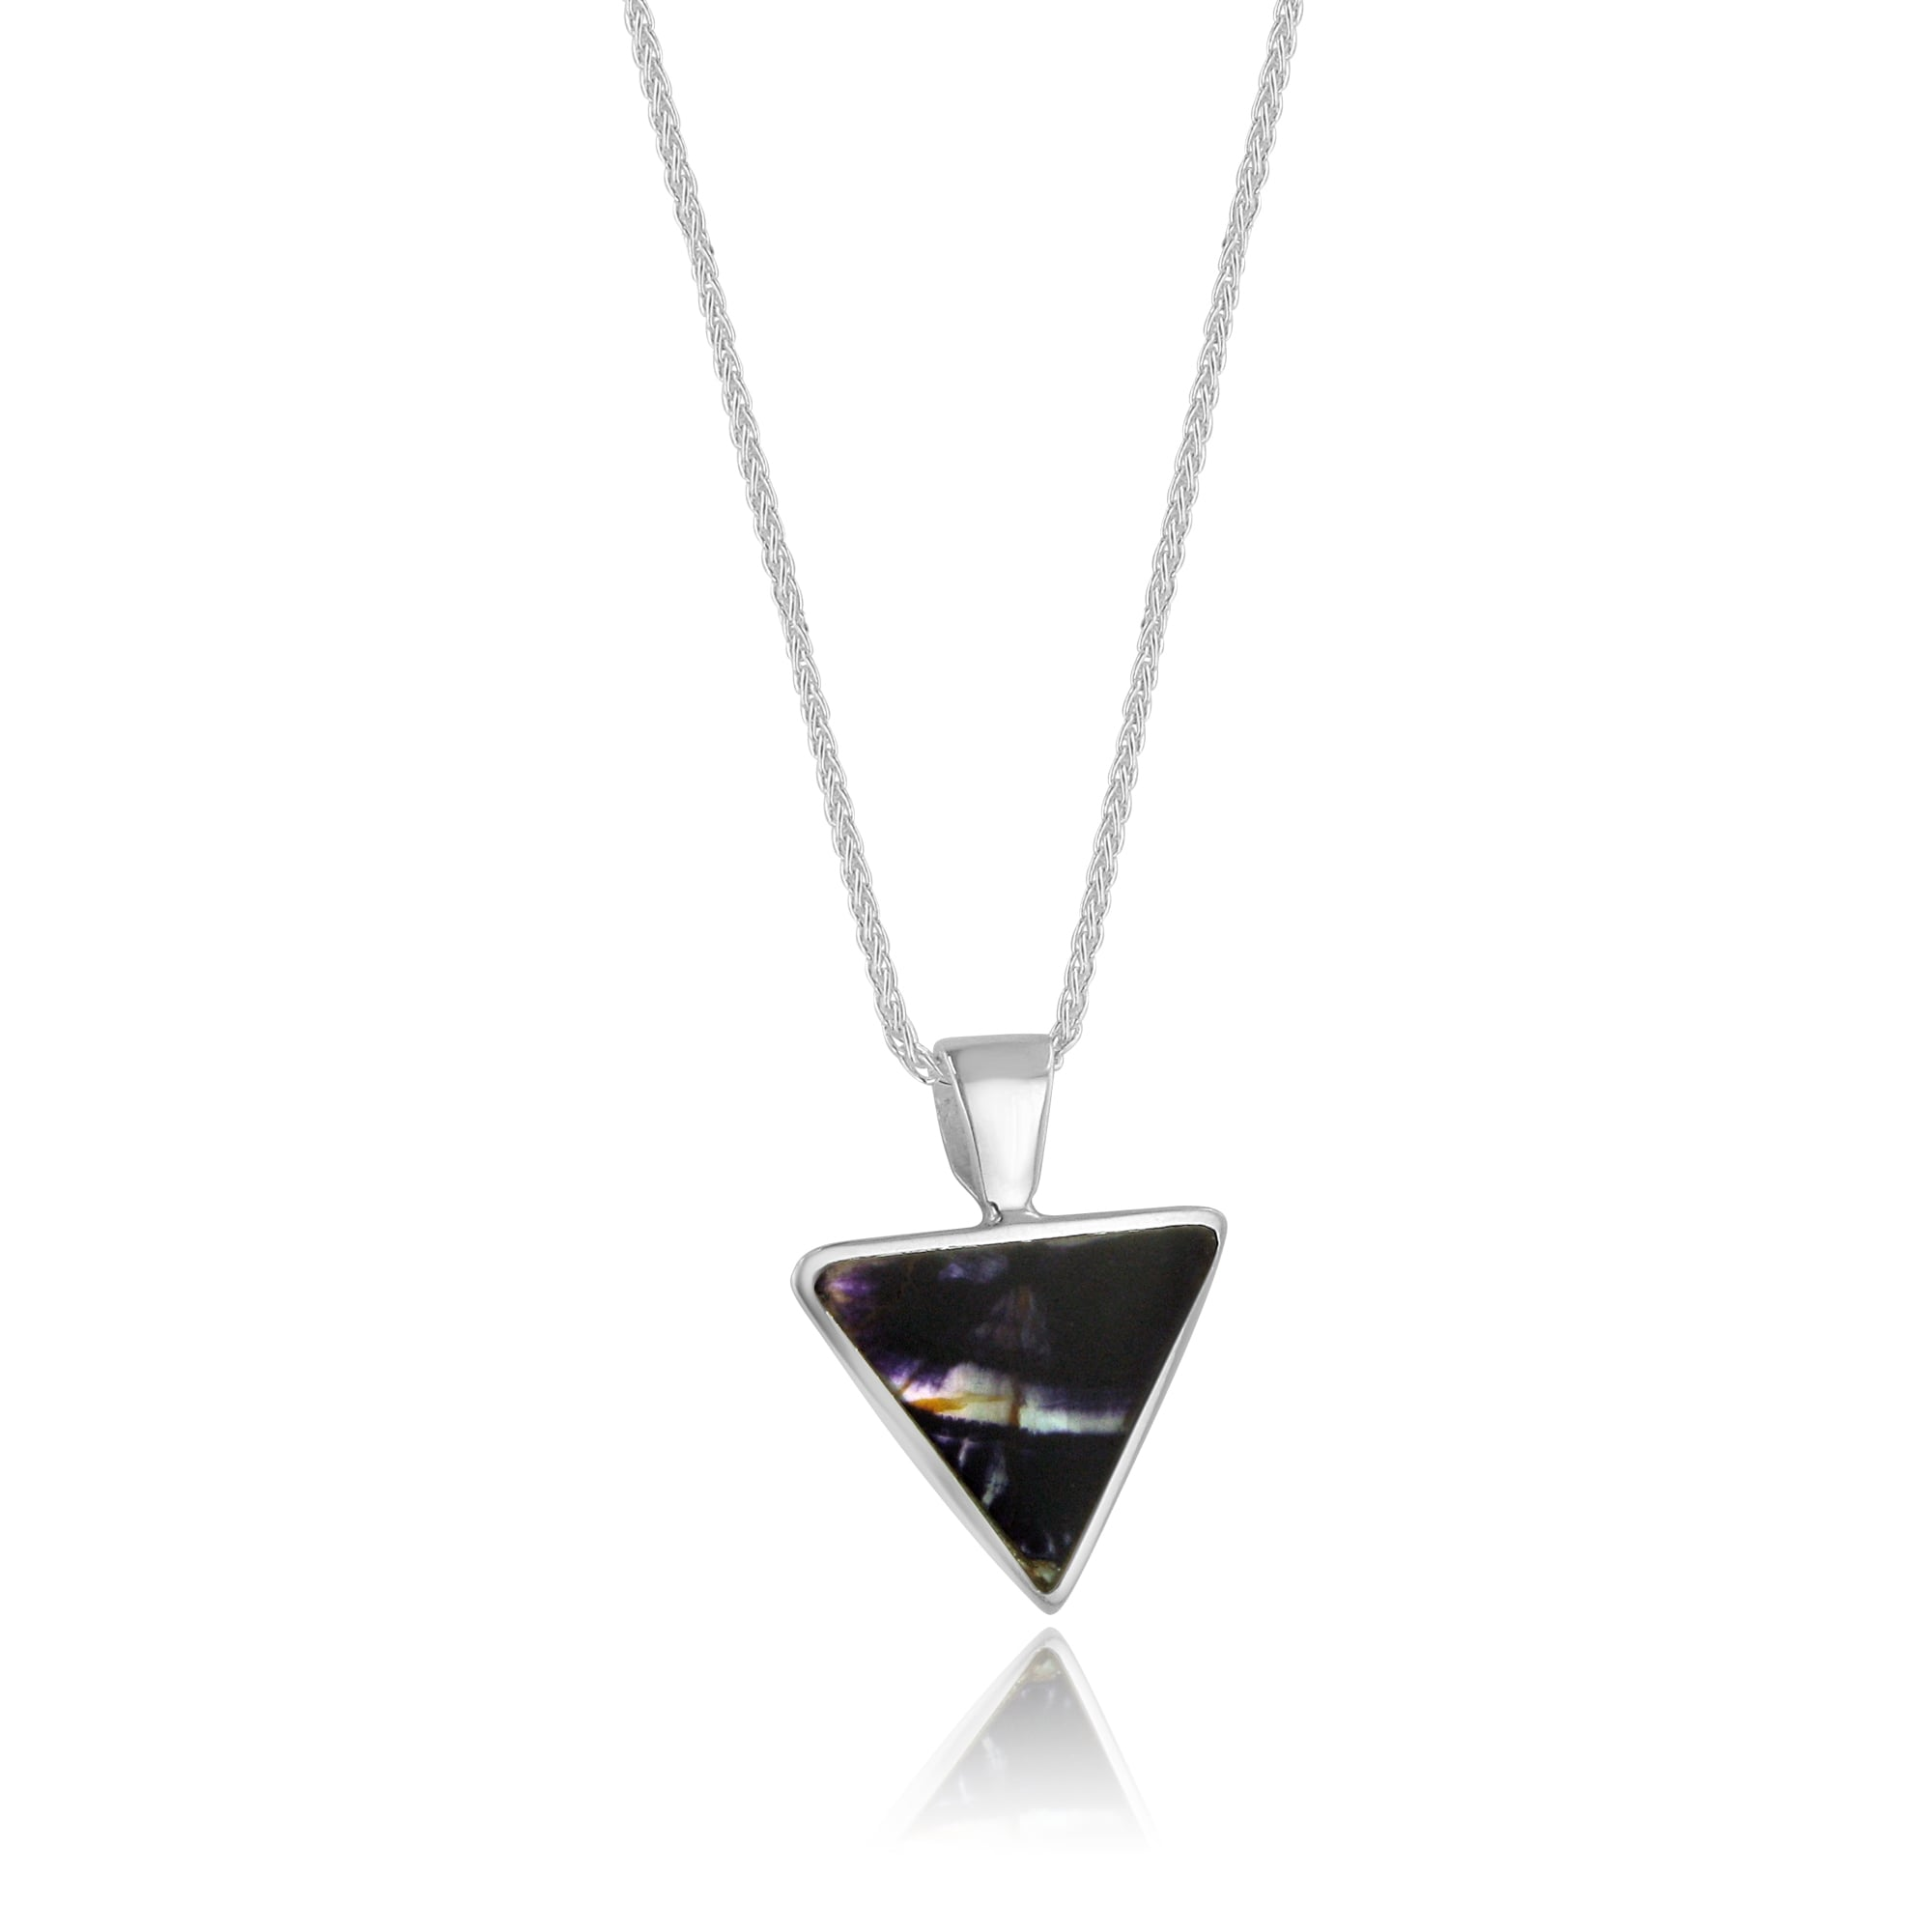 uk triangular jewellers browne pendant burren image pendants necklaces gerry from products